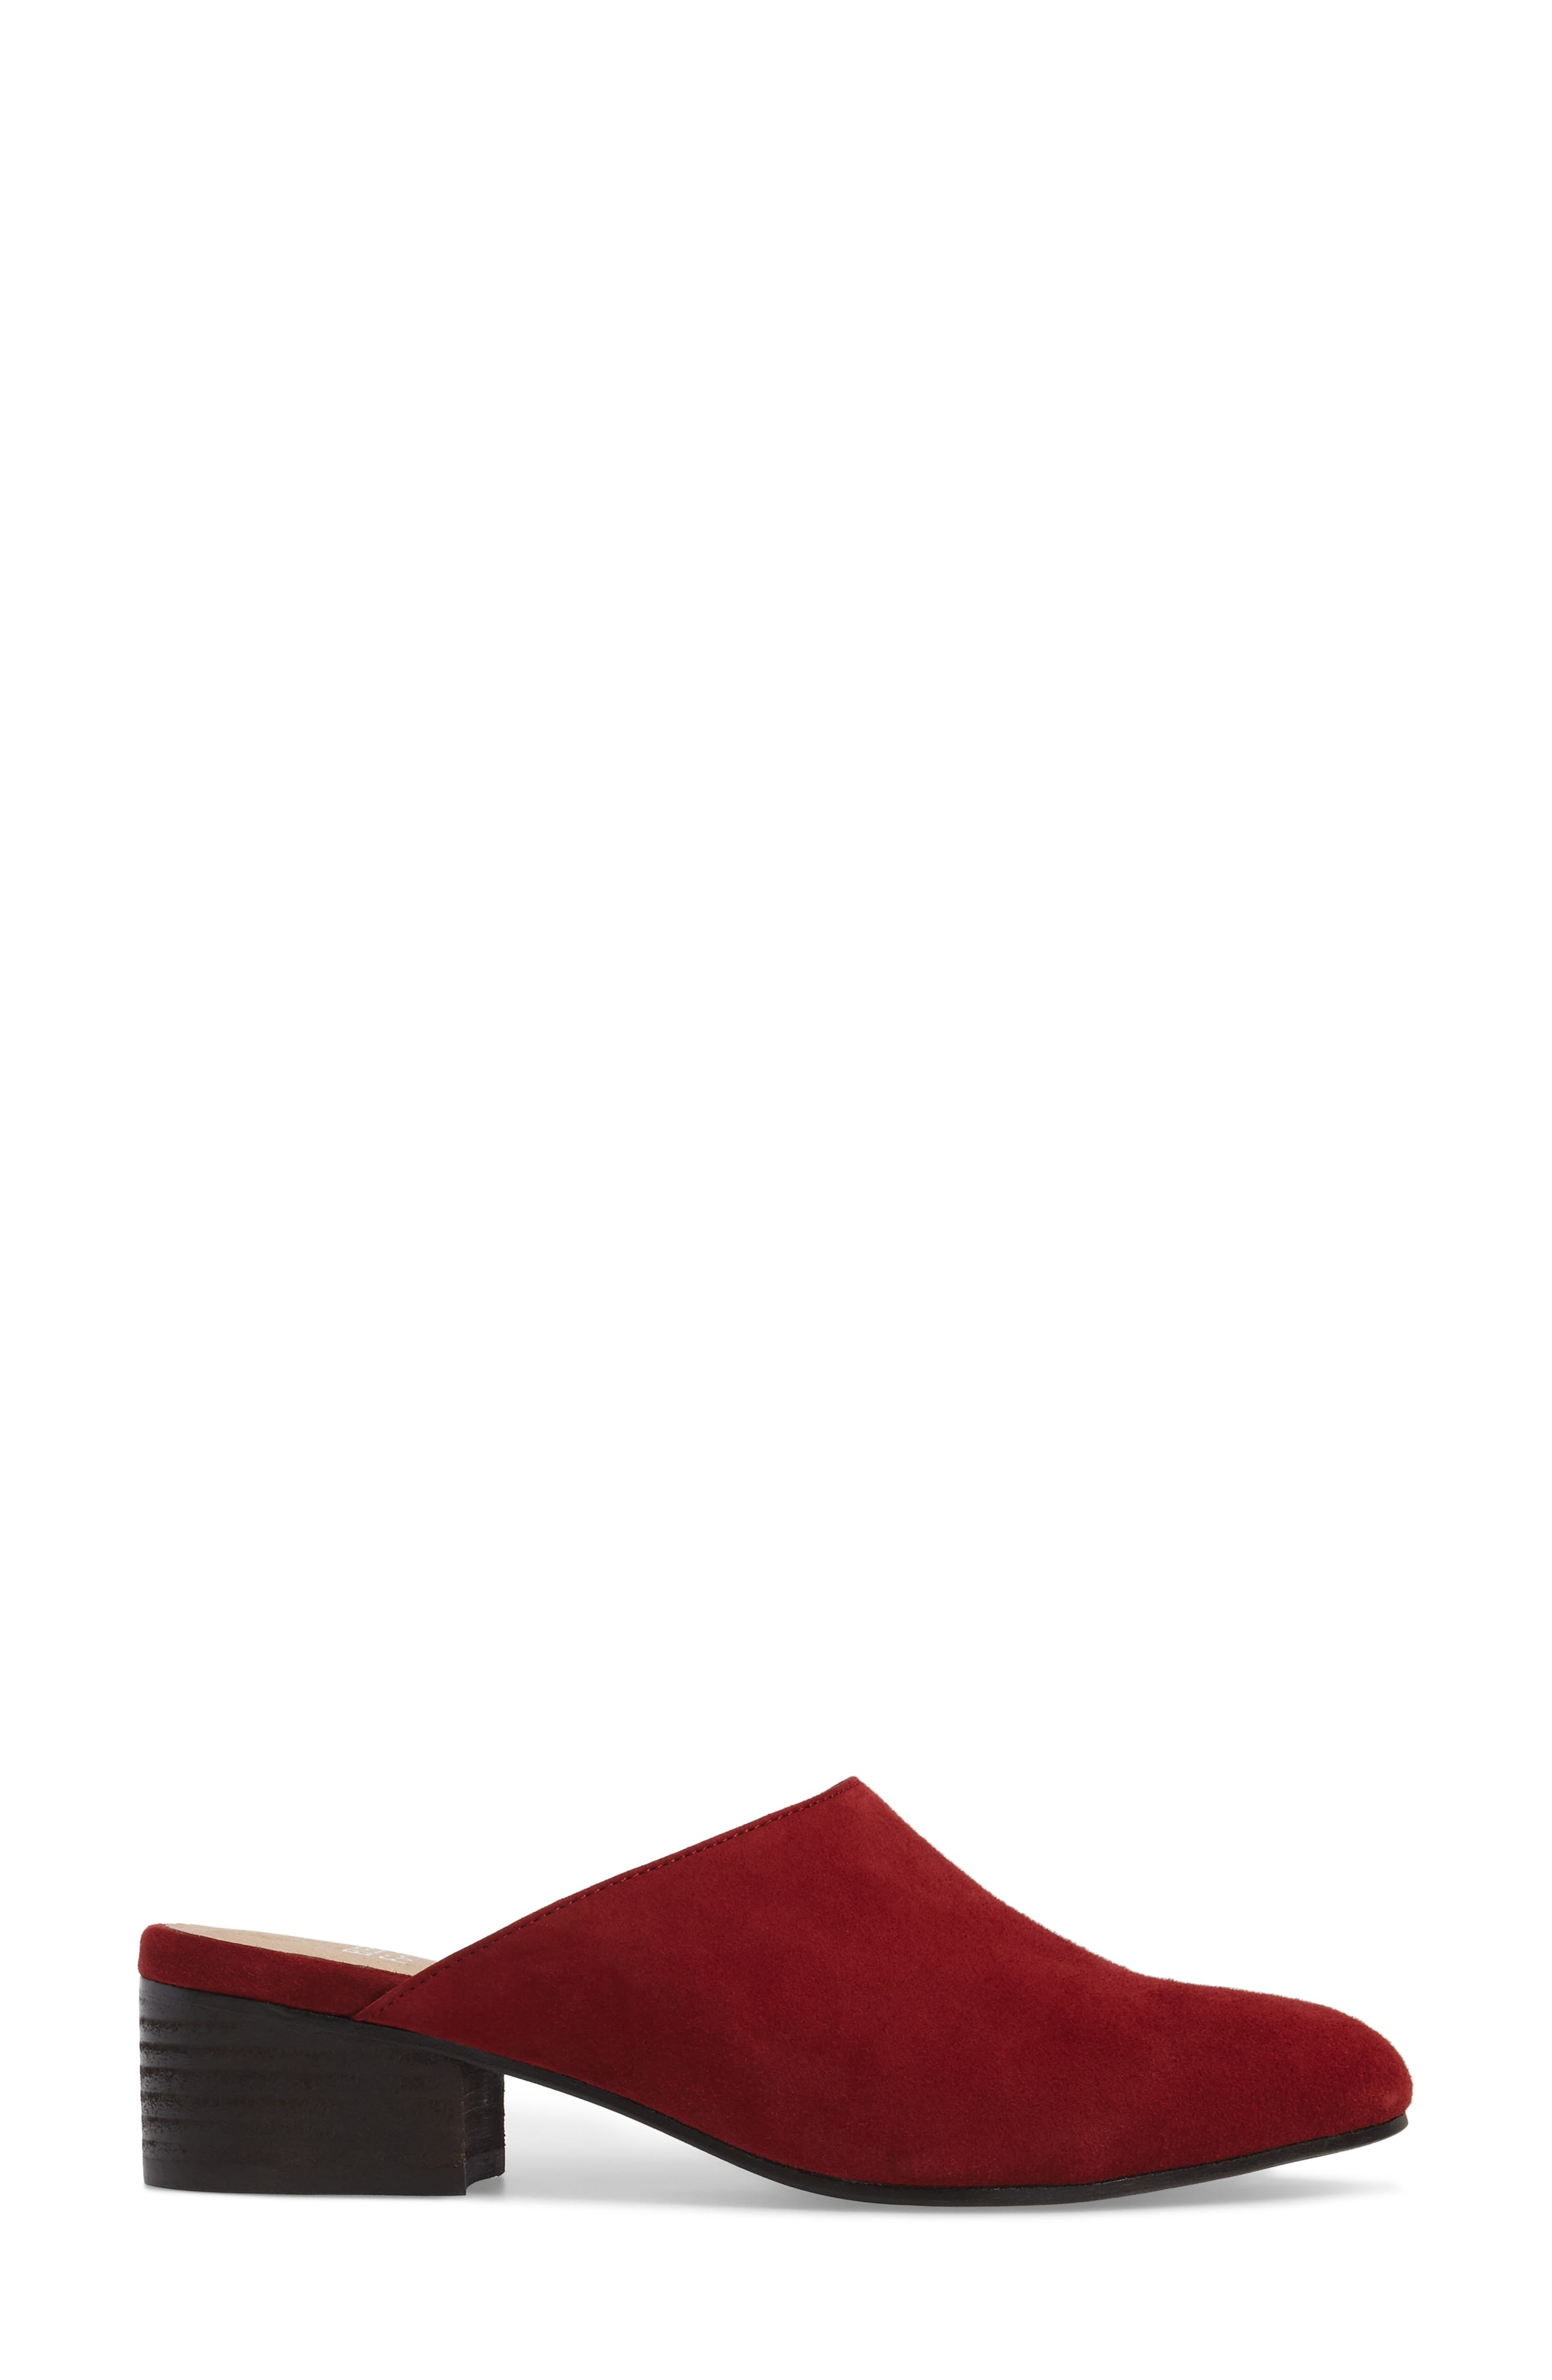 Alternate Image 3  - Eileen Fisher Silvia Mule (Women)